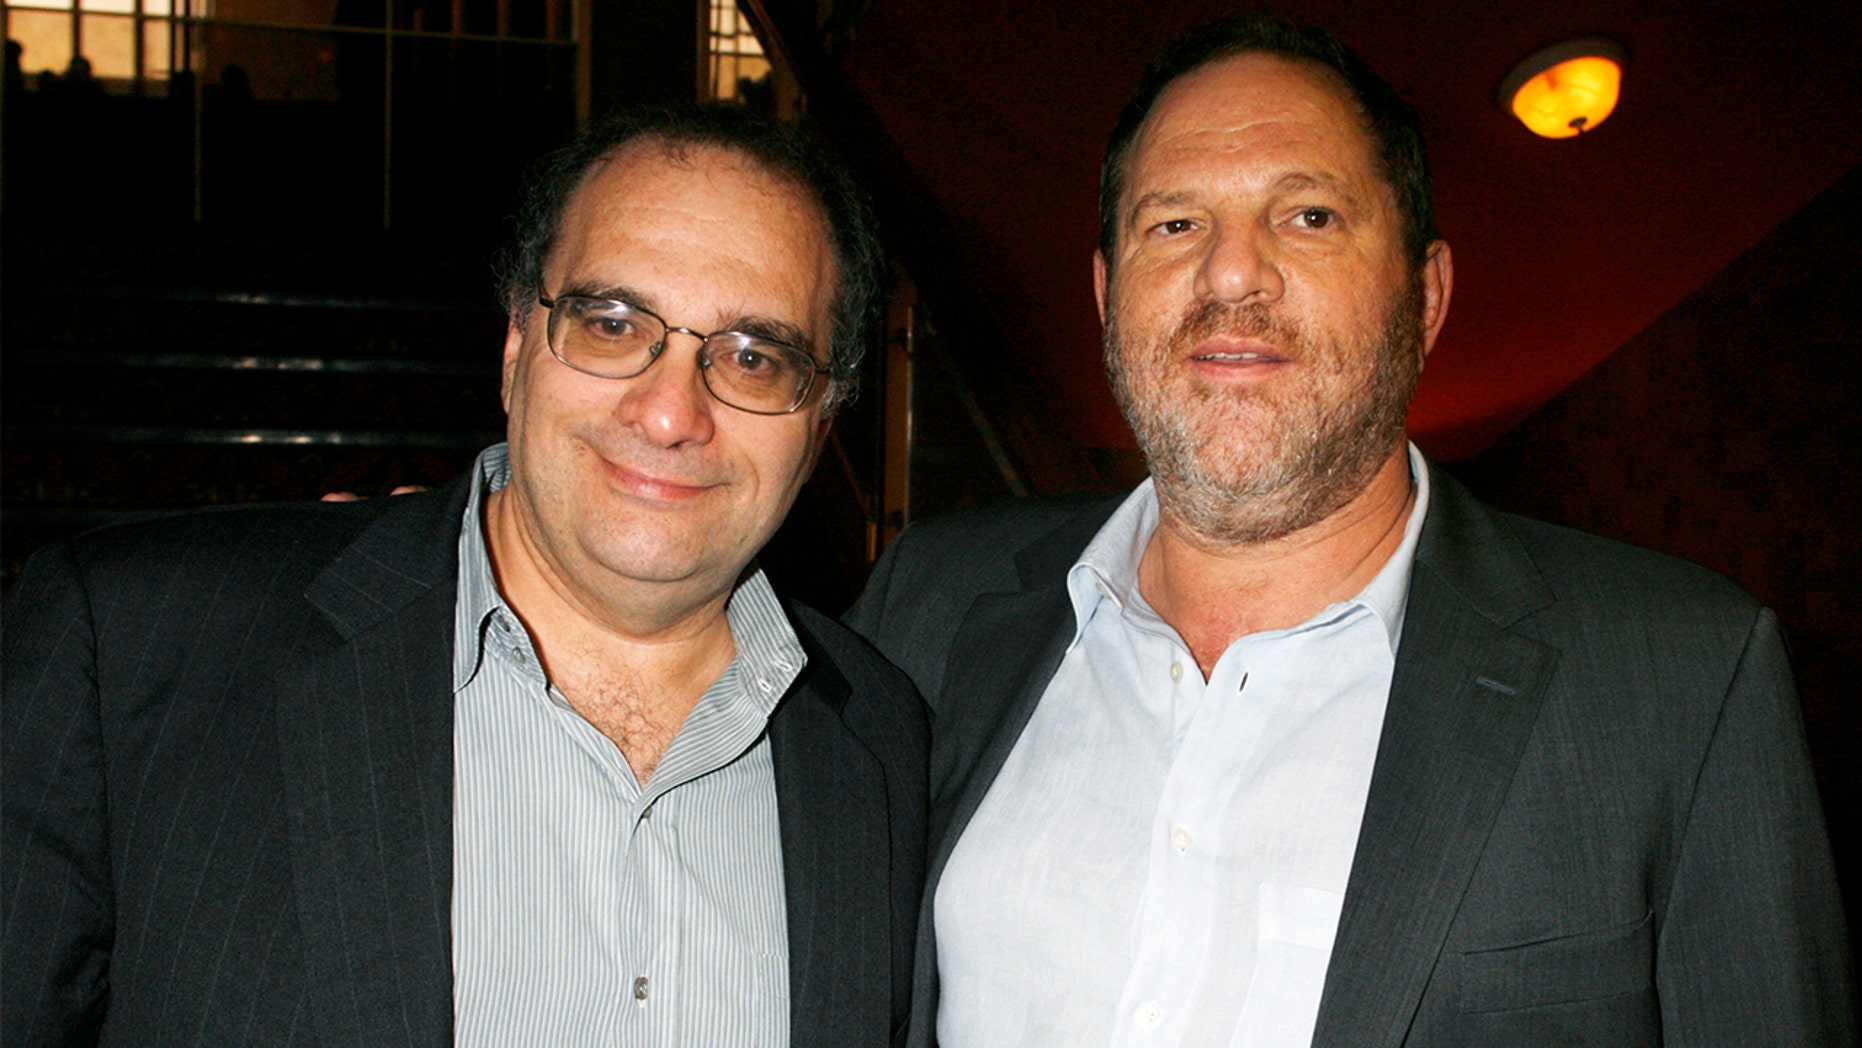 Since his sexual abuse scandal broke in October, Weinstein was dropped by the studio he co-founded with his brother Bob.